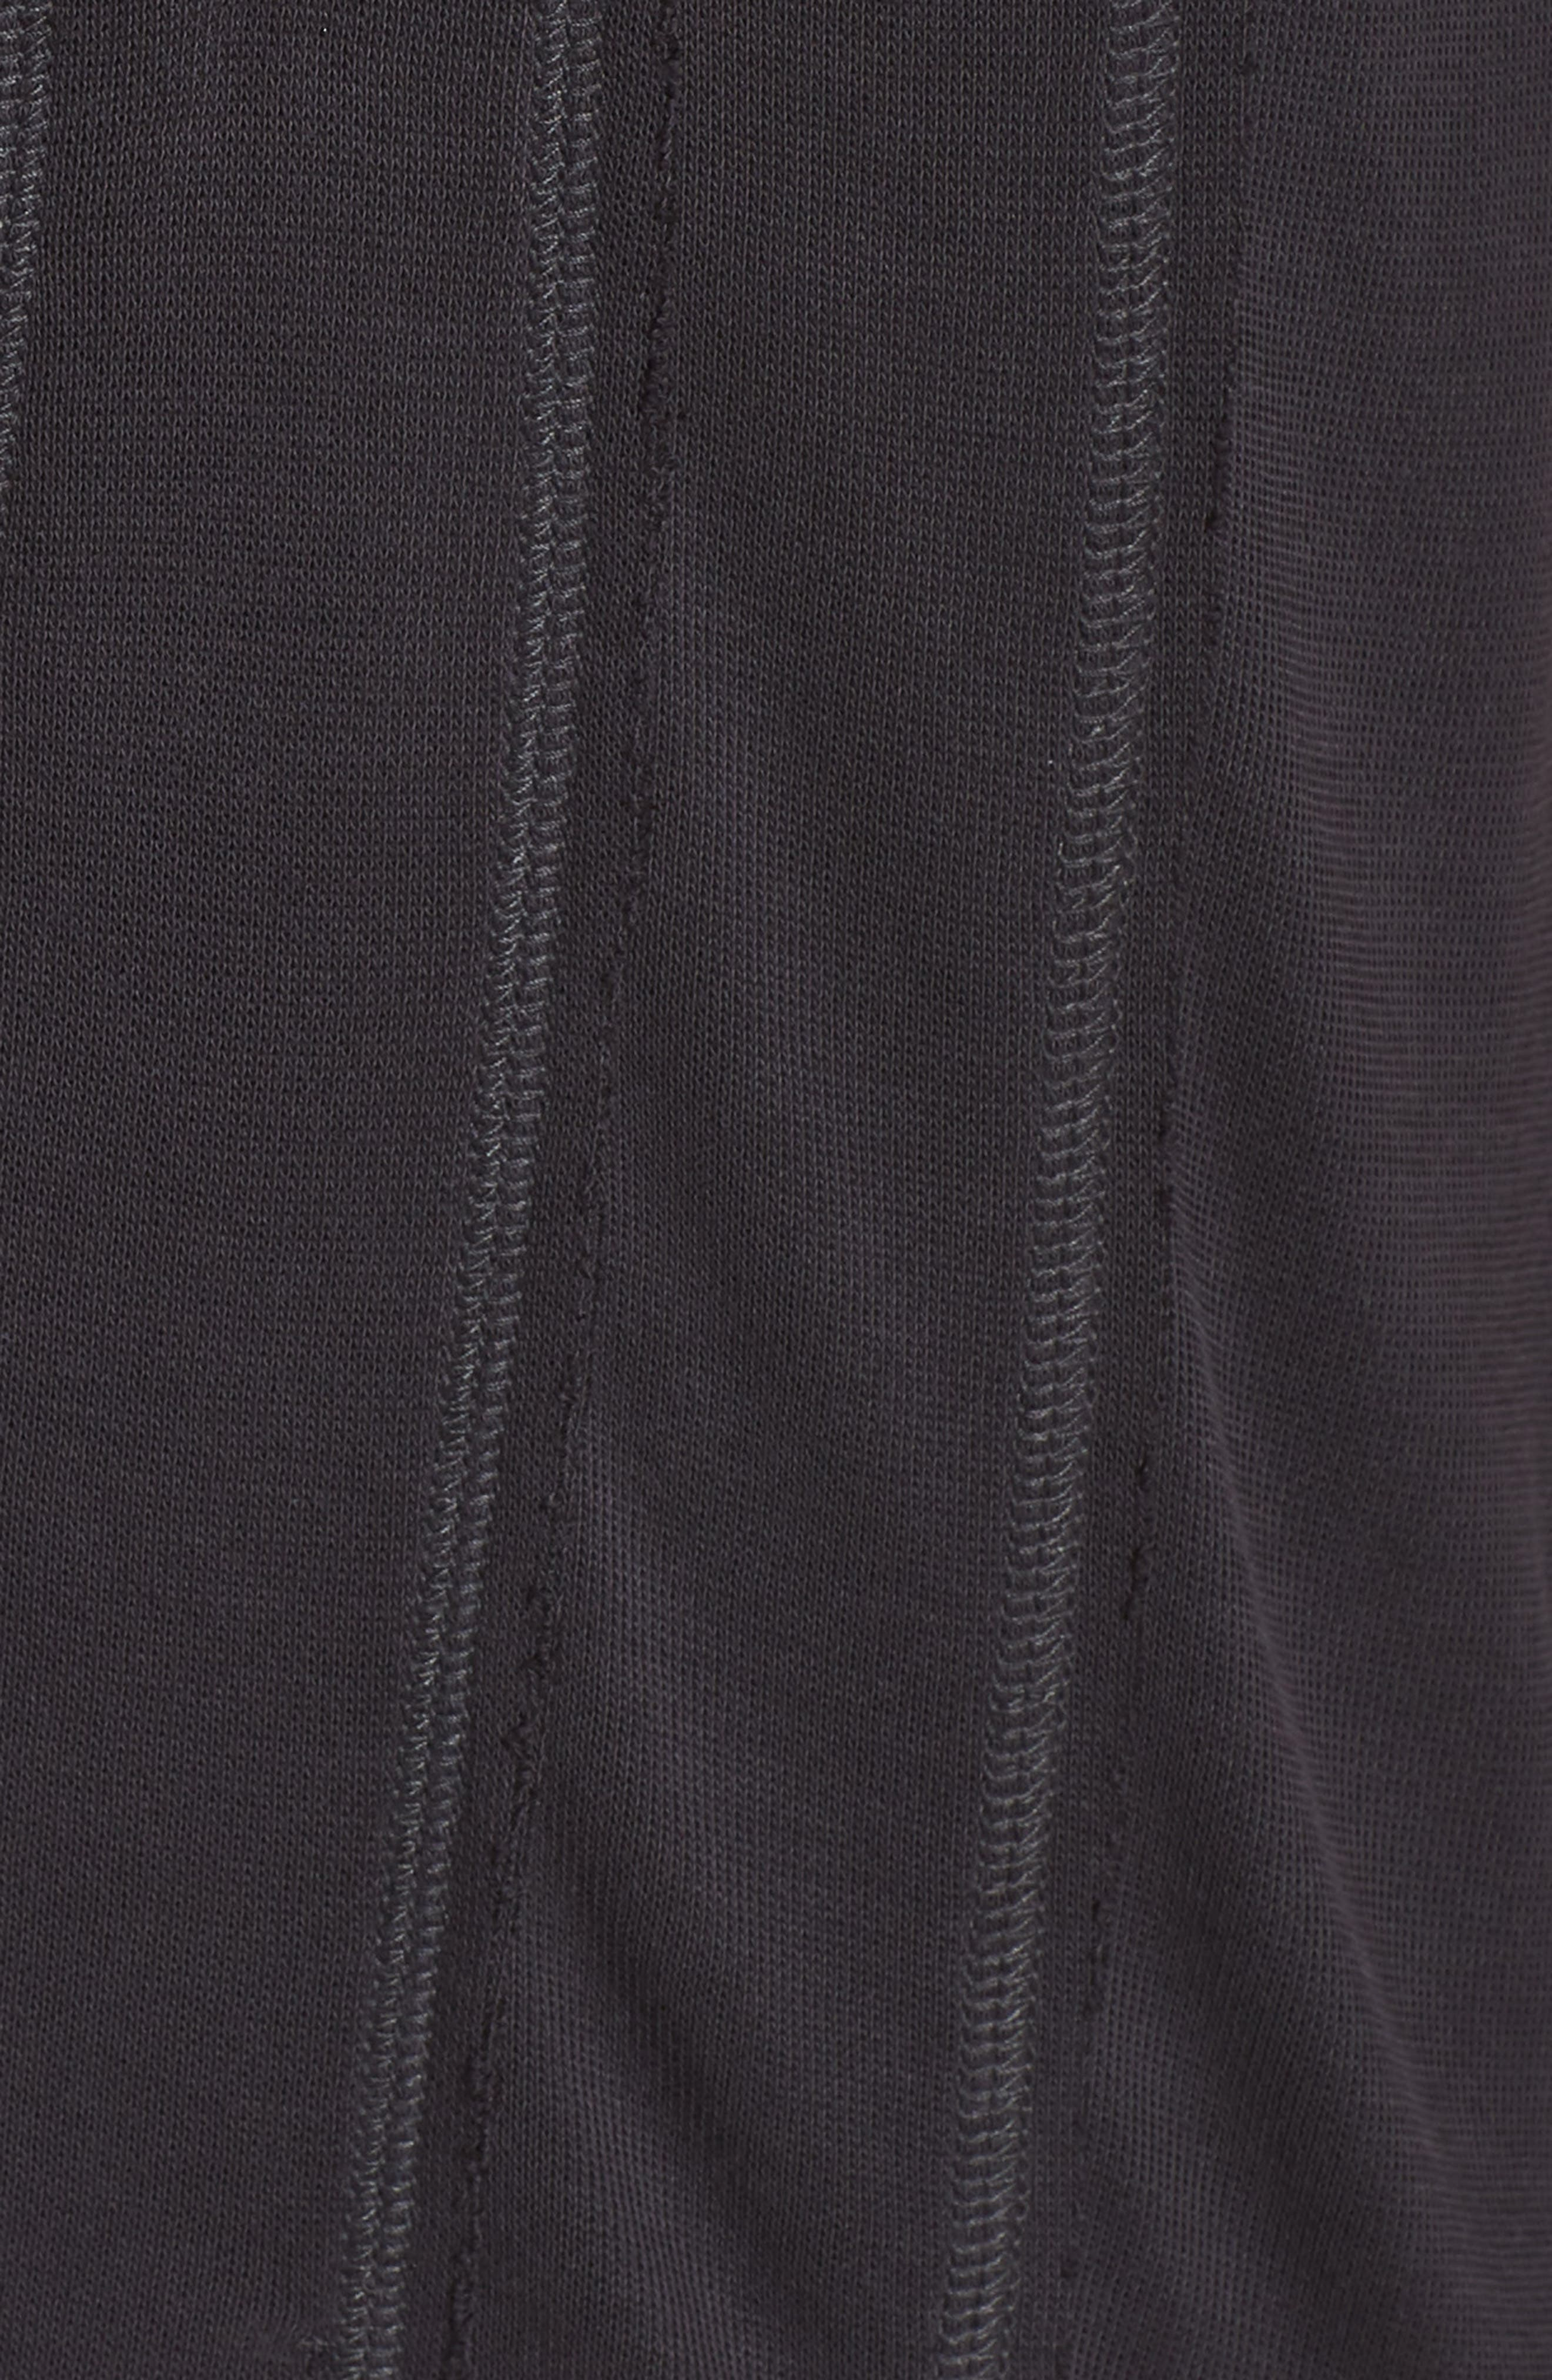 Just Like That Half-Zip Pullover,                             Alternate thumbnail 6, color,                             BLACK